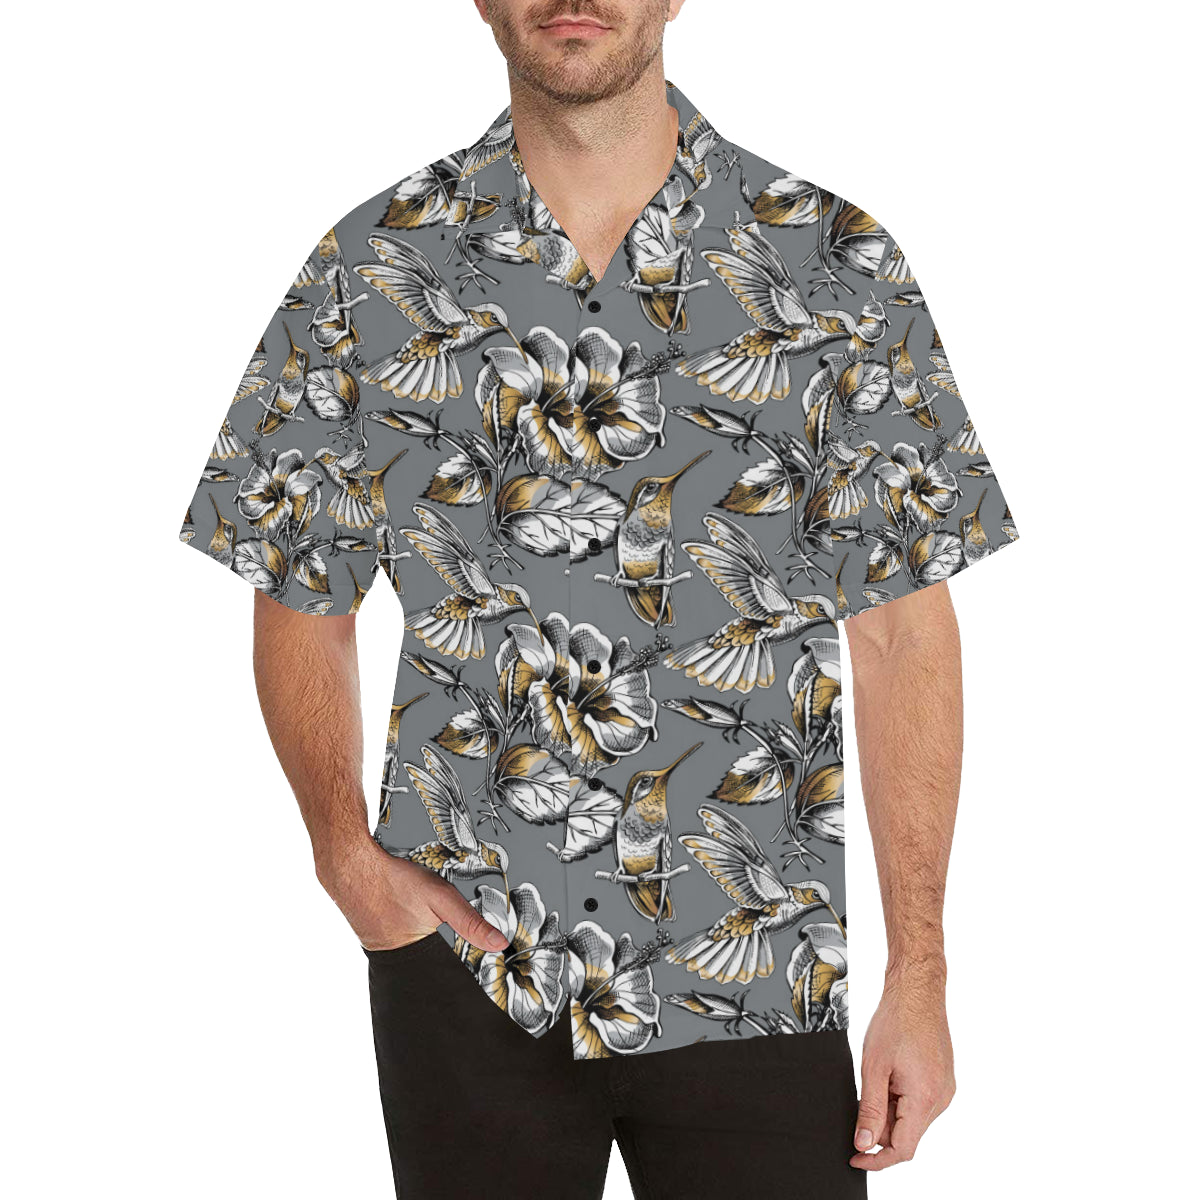 Hummingbird Pattern Print Design 02 Hawaiian Shirt